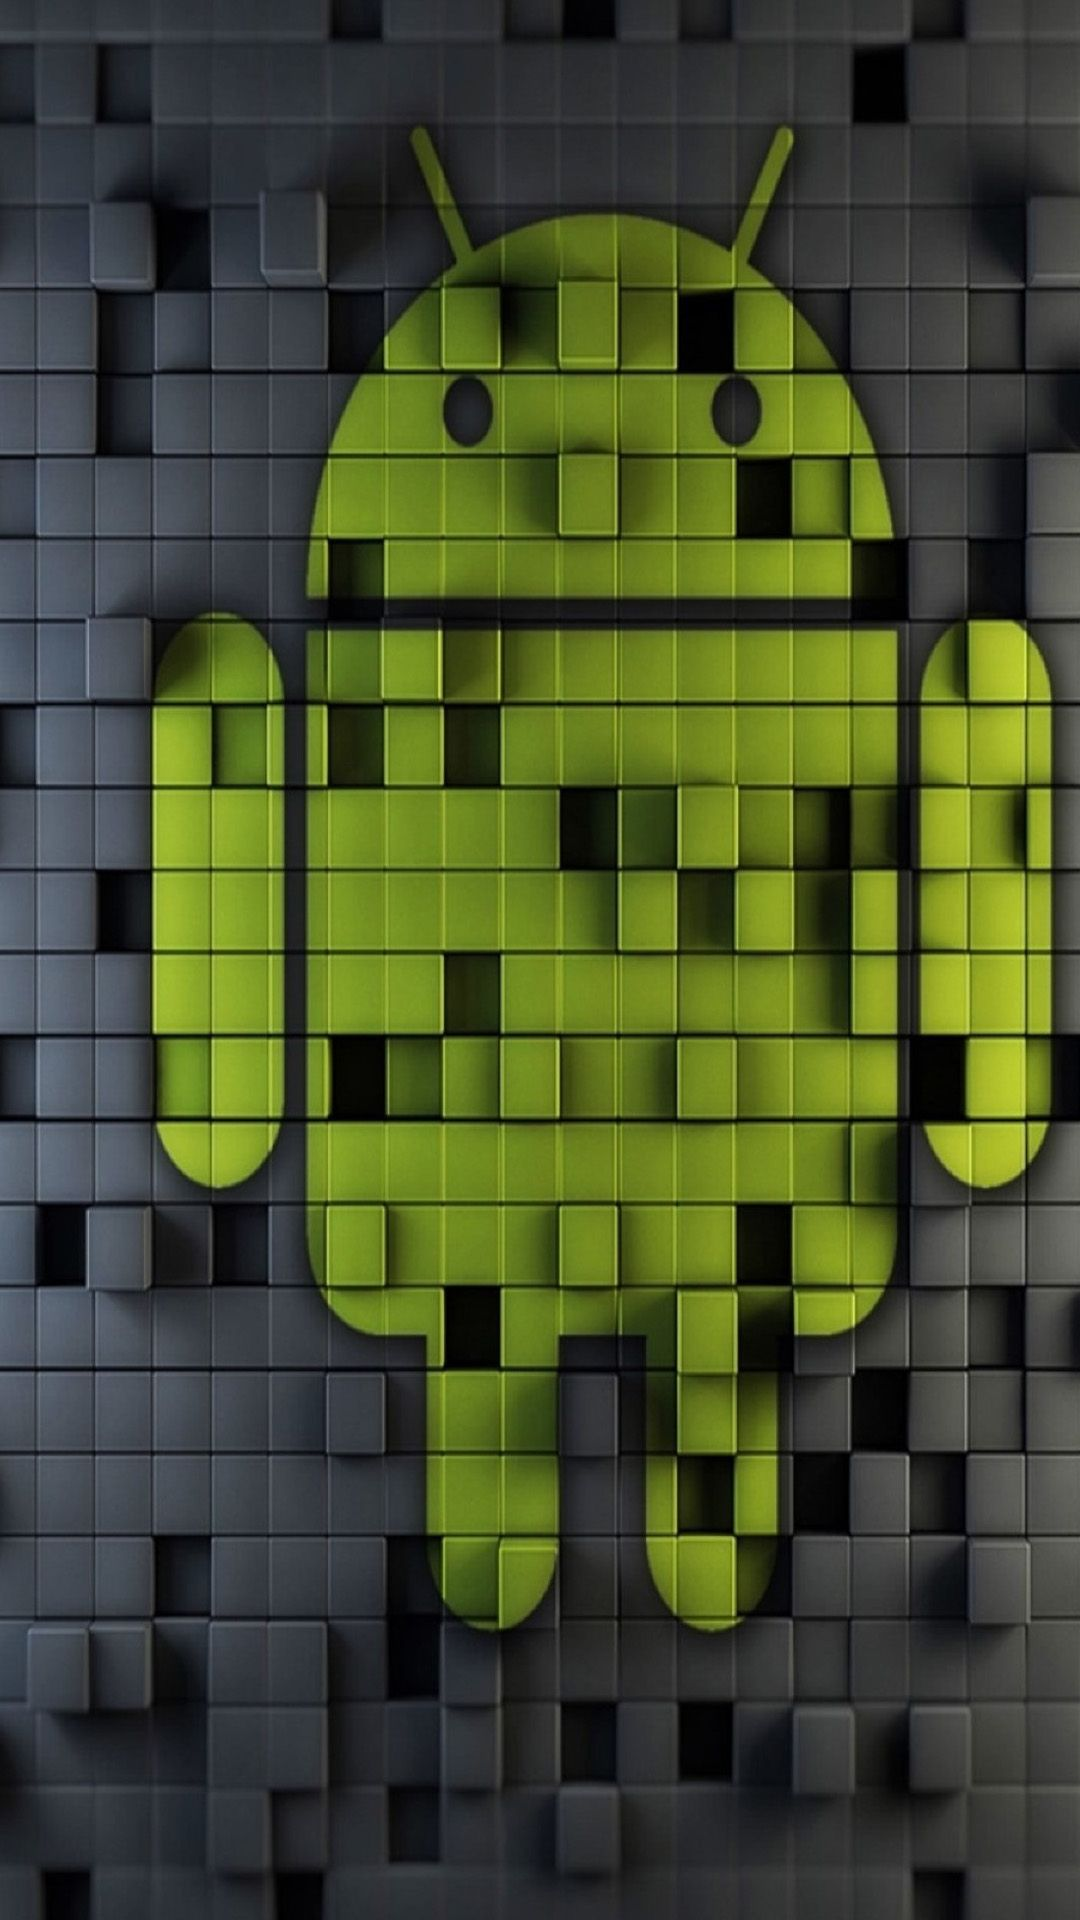 electronic circuit green black android wallpaper free download